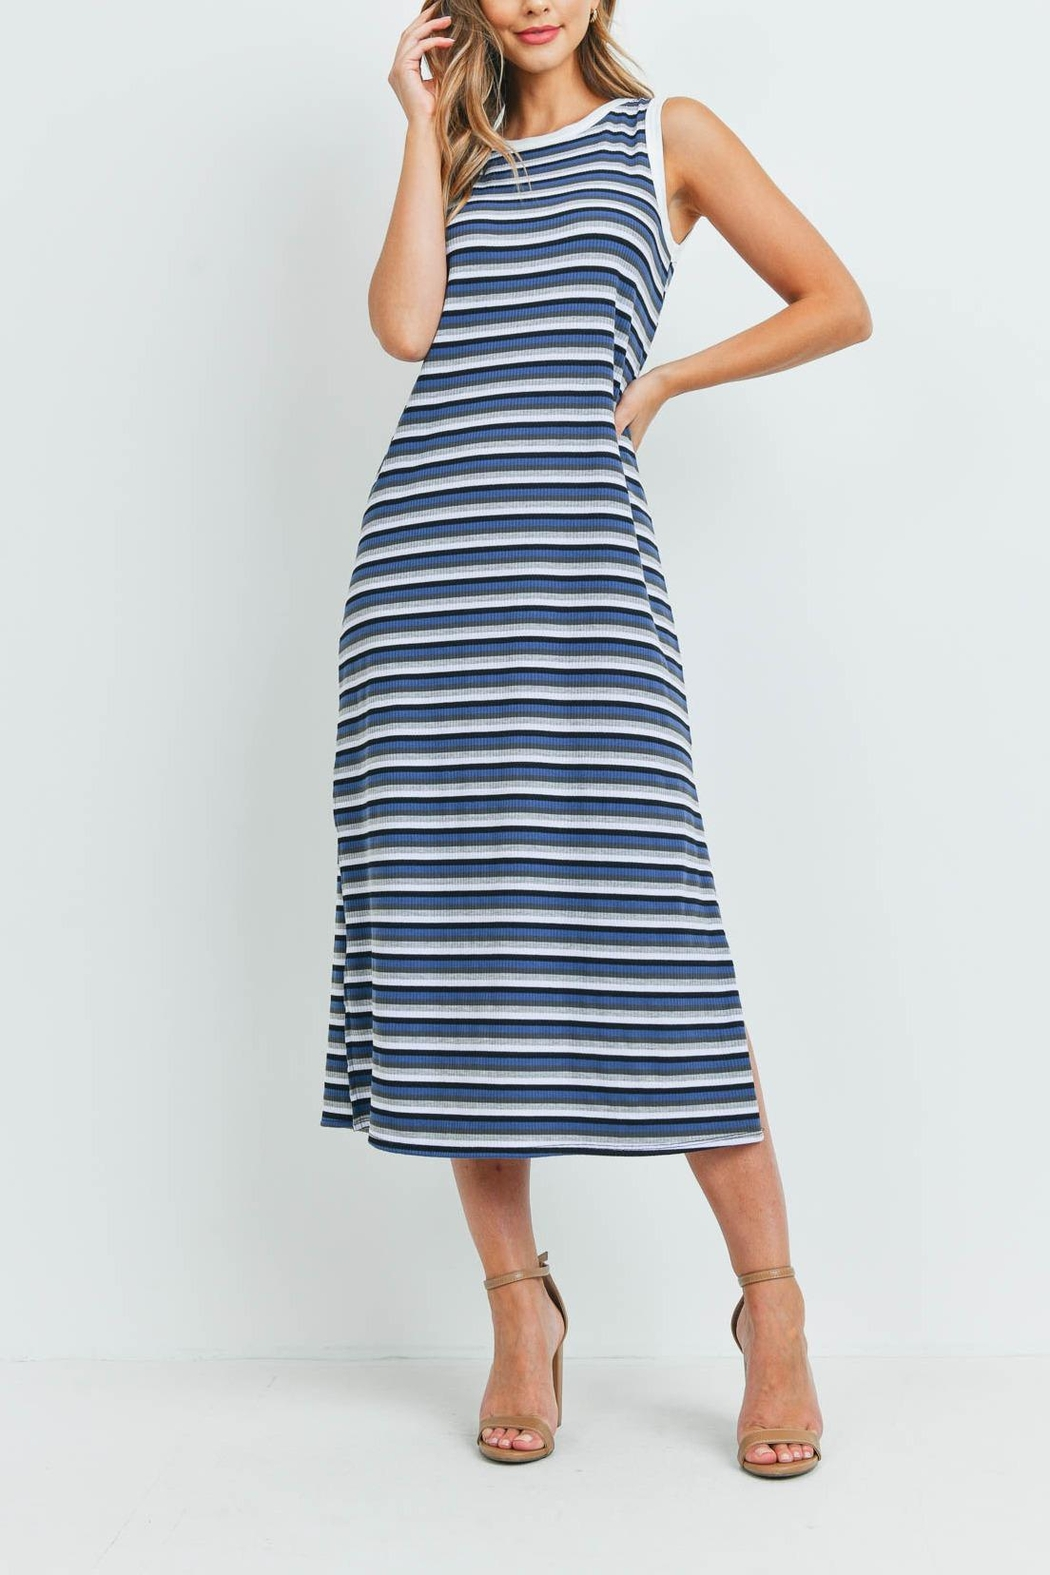 Riah Fashion Rib-Multi-Color-Stripes-Maxi-Dress-With-Side-Slit - Front Cropped Image